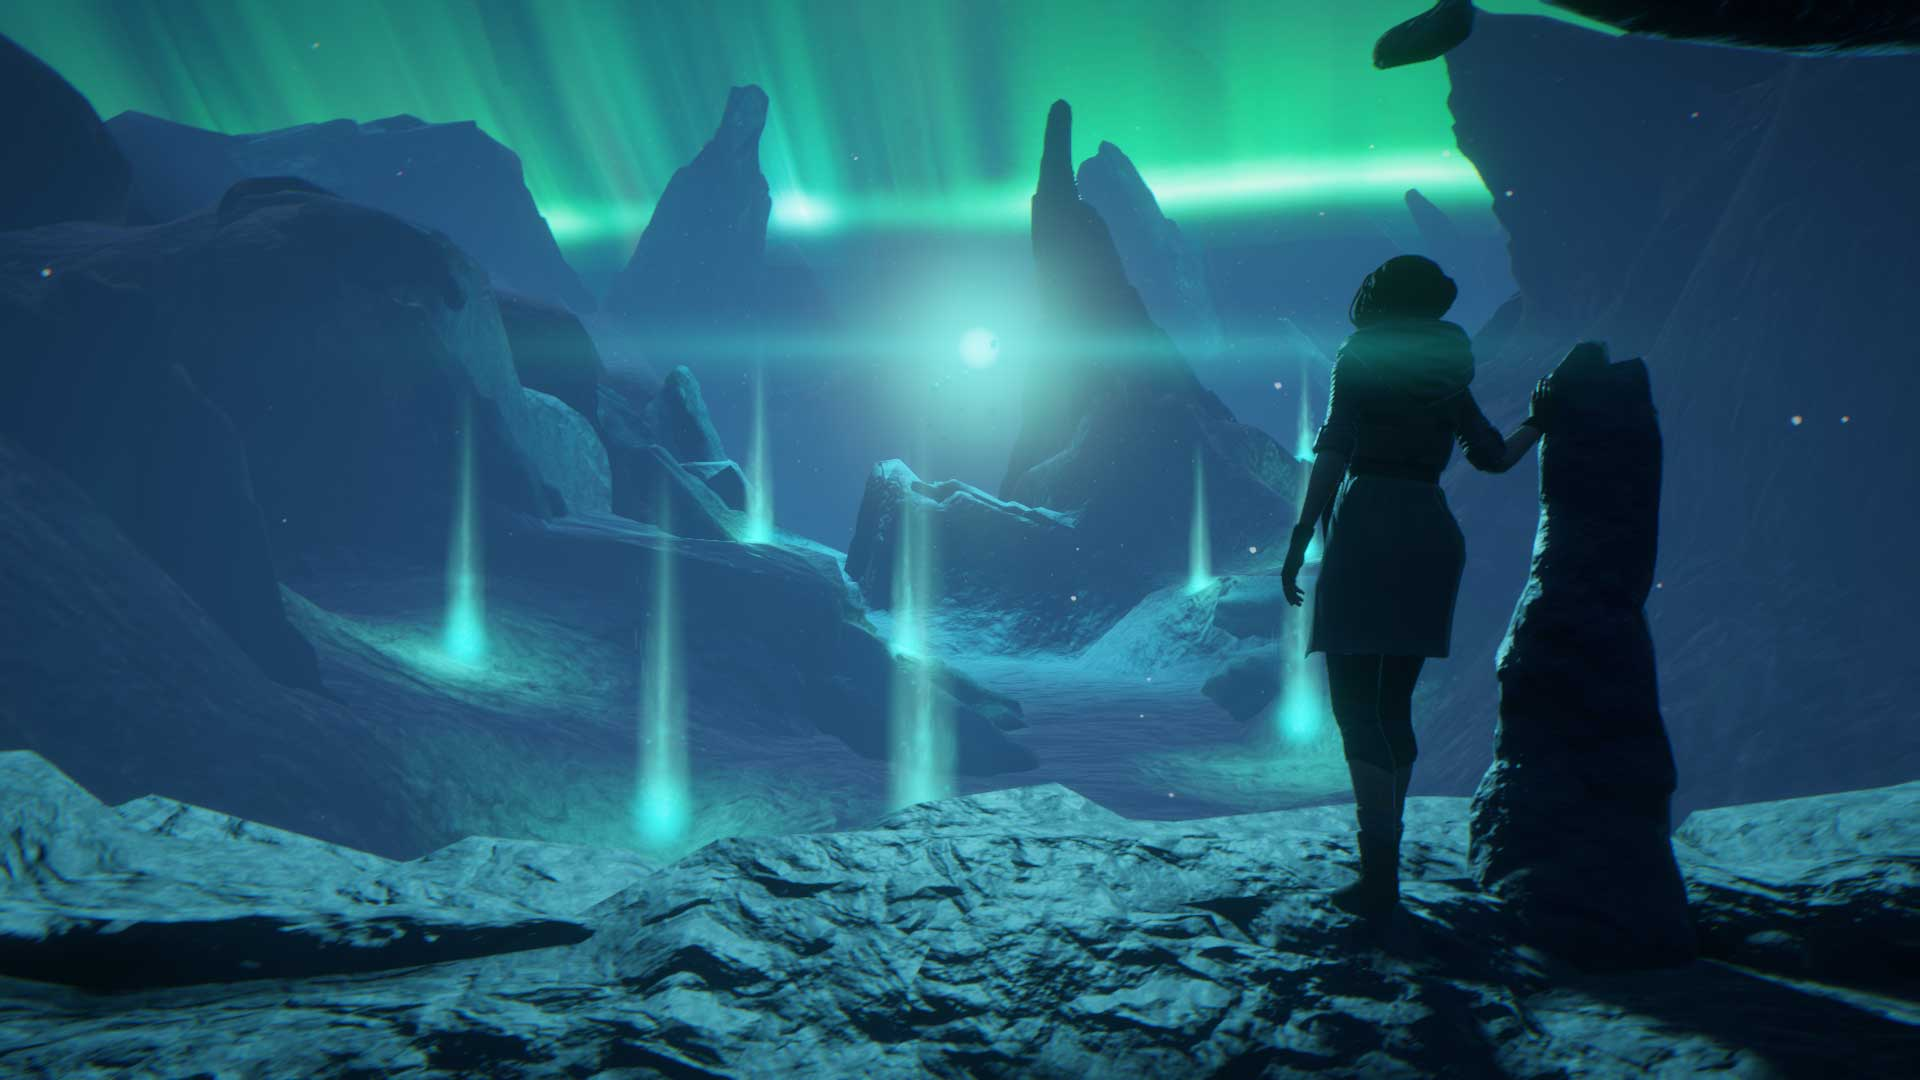 dreamfall_chapters_unity_5_10